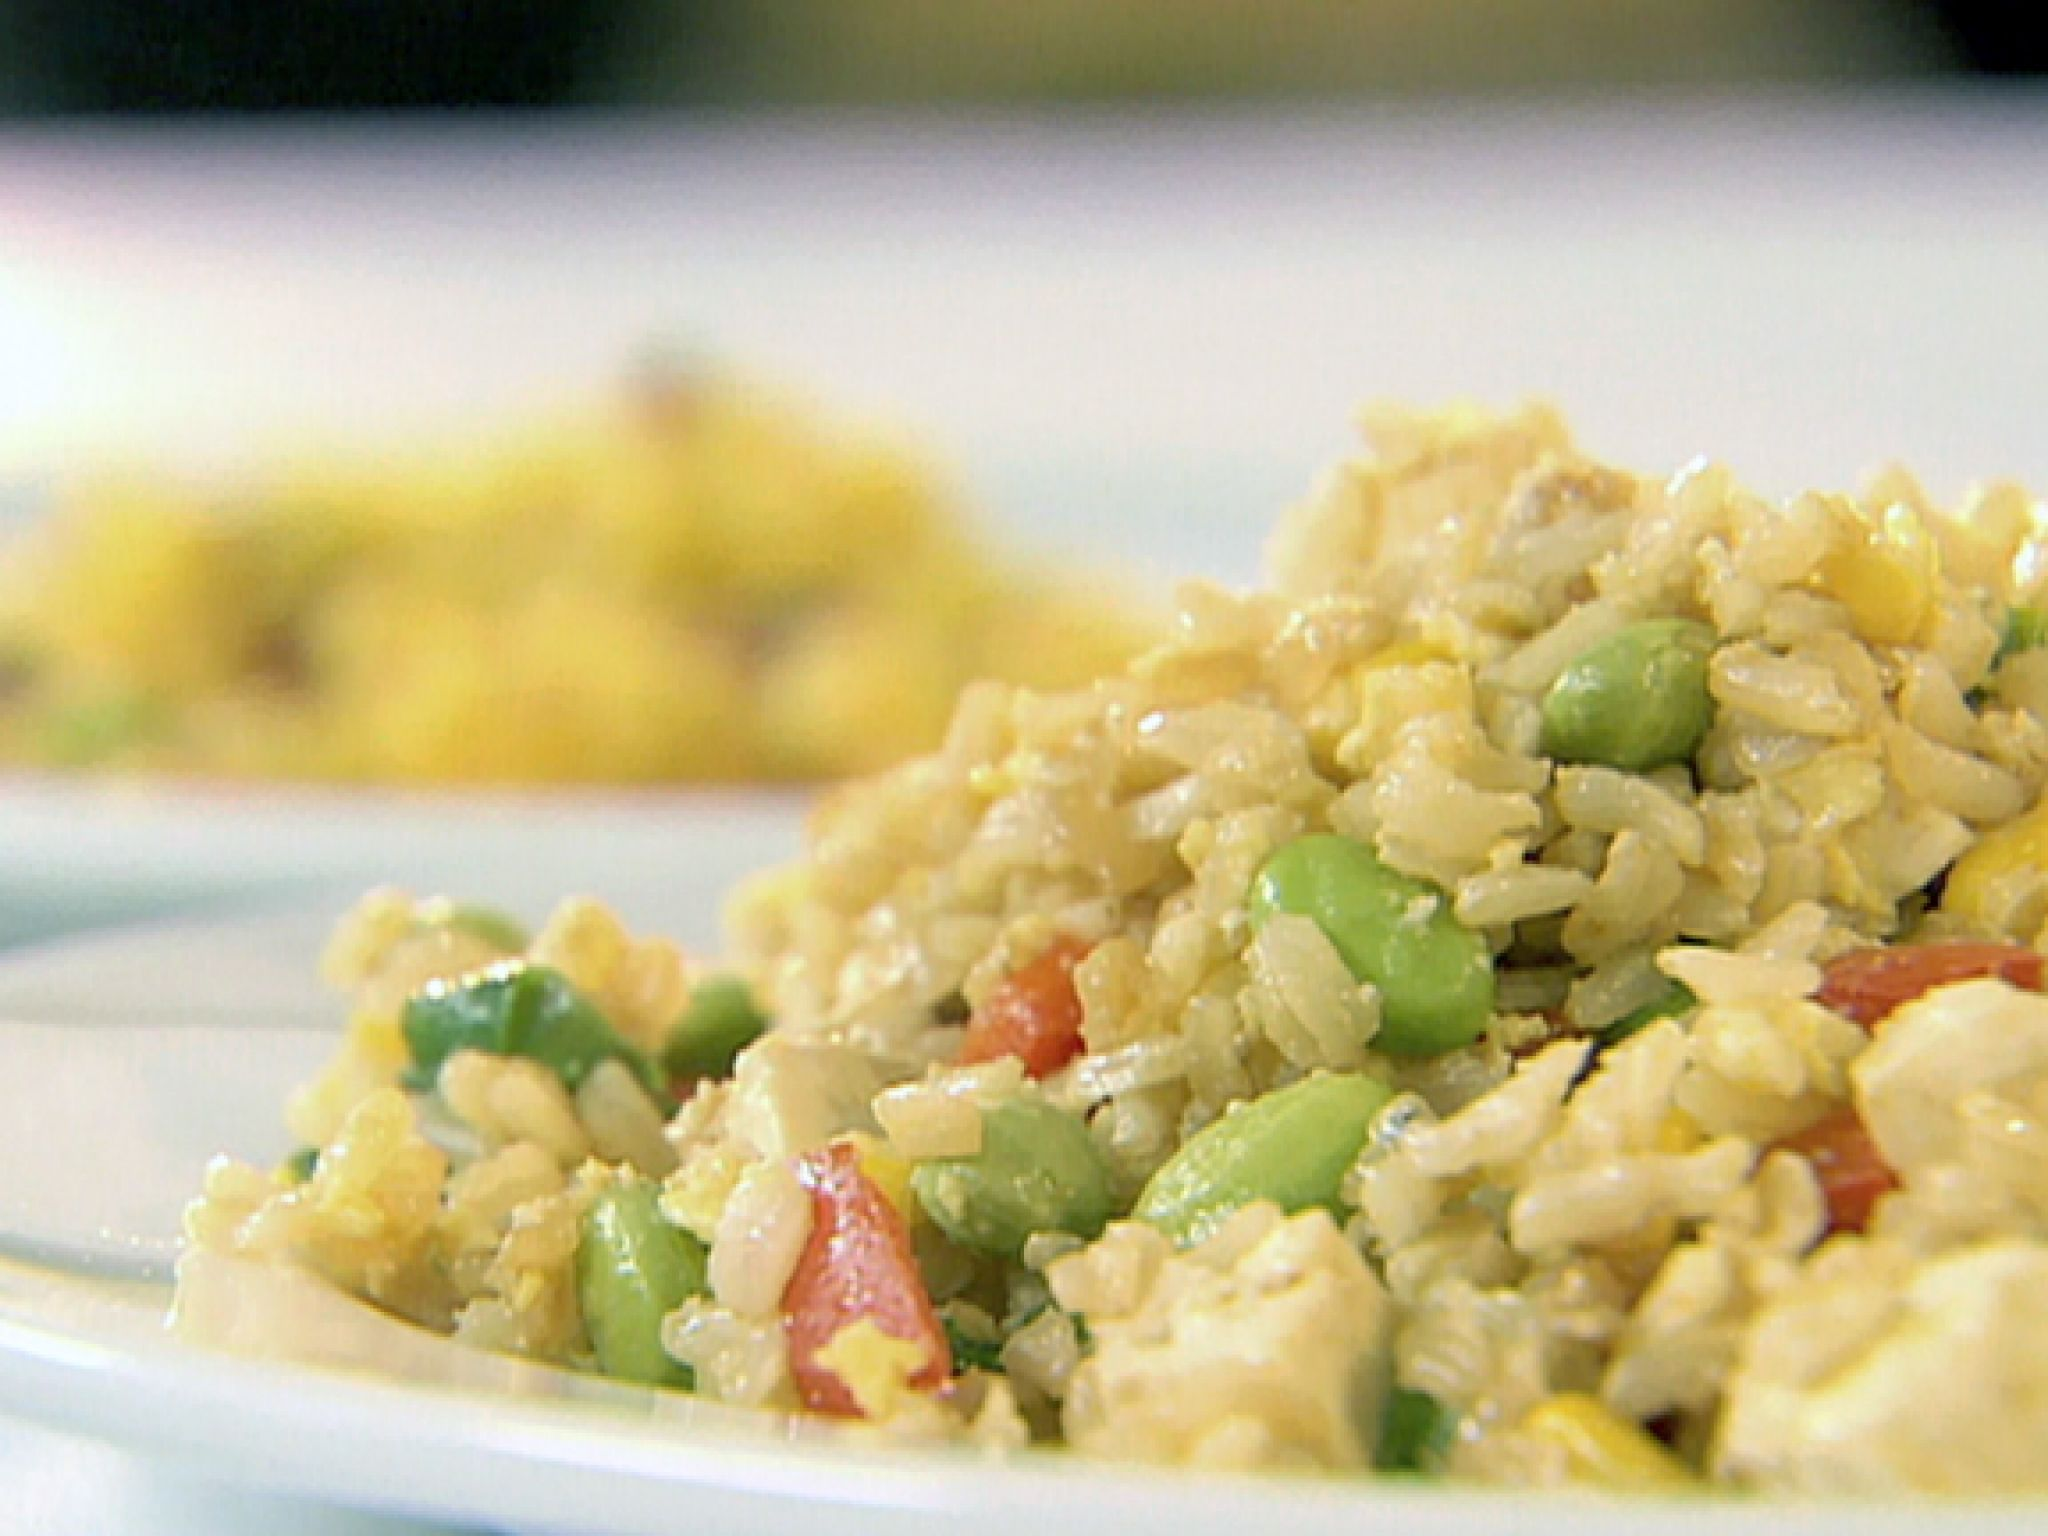 ... Dish Main Dish - Other Fried Rice with Scallions, Edamame and Tofu